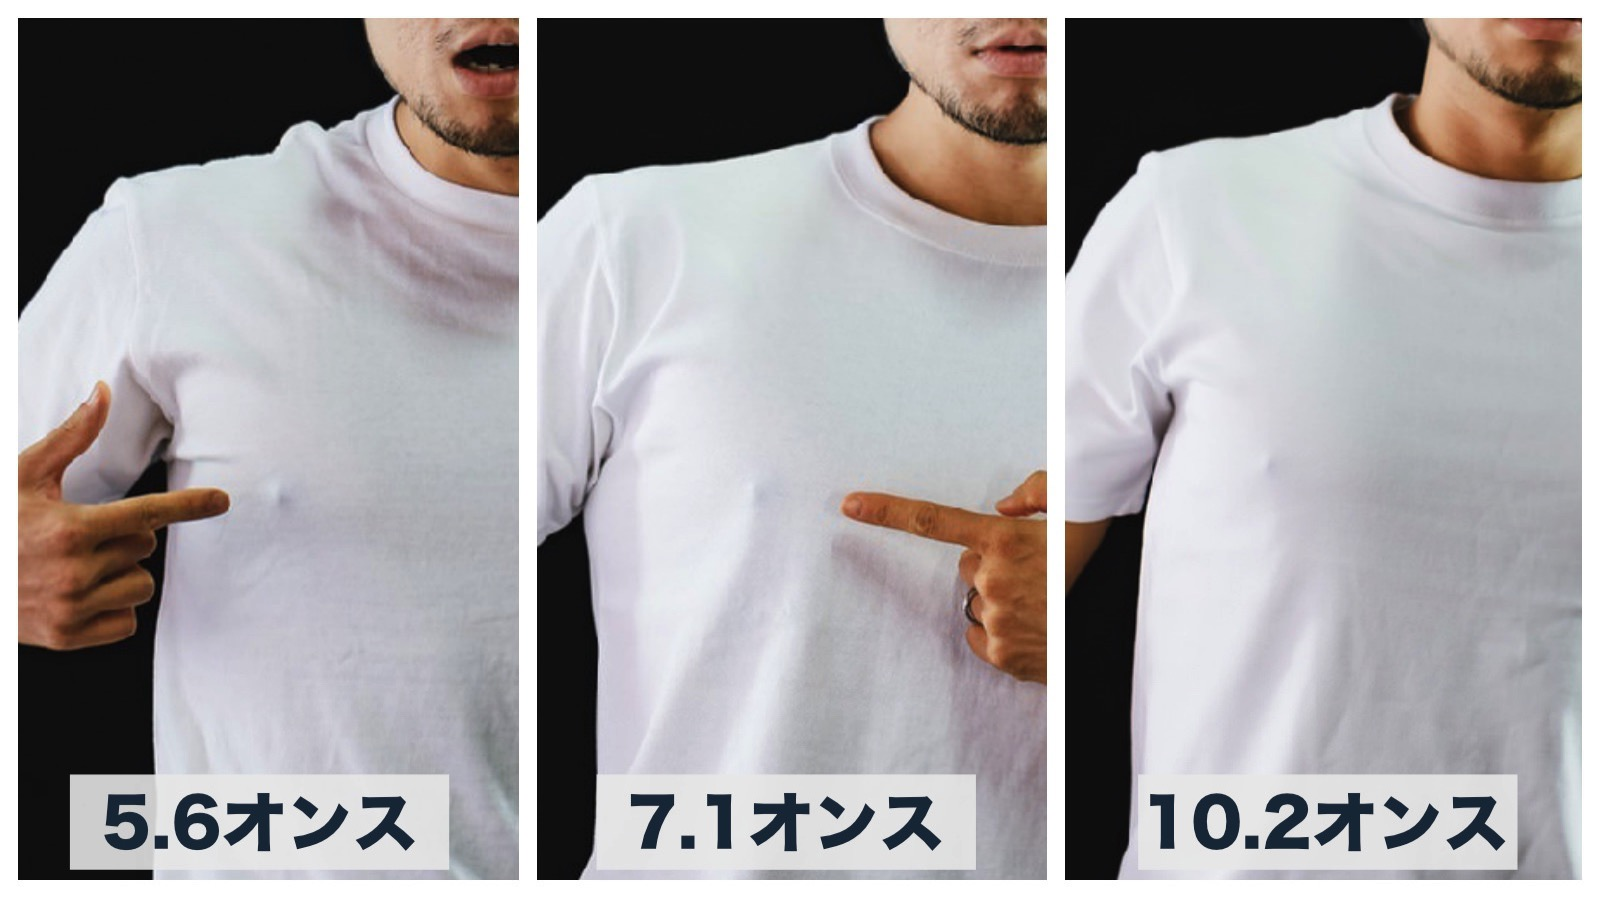 Three Types of White Tshirts Compared 2 2